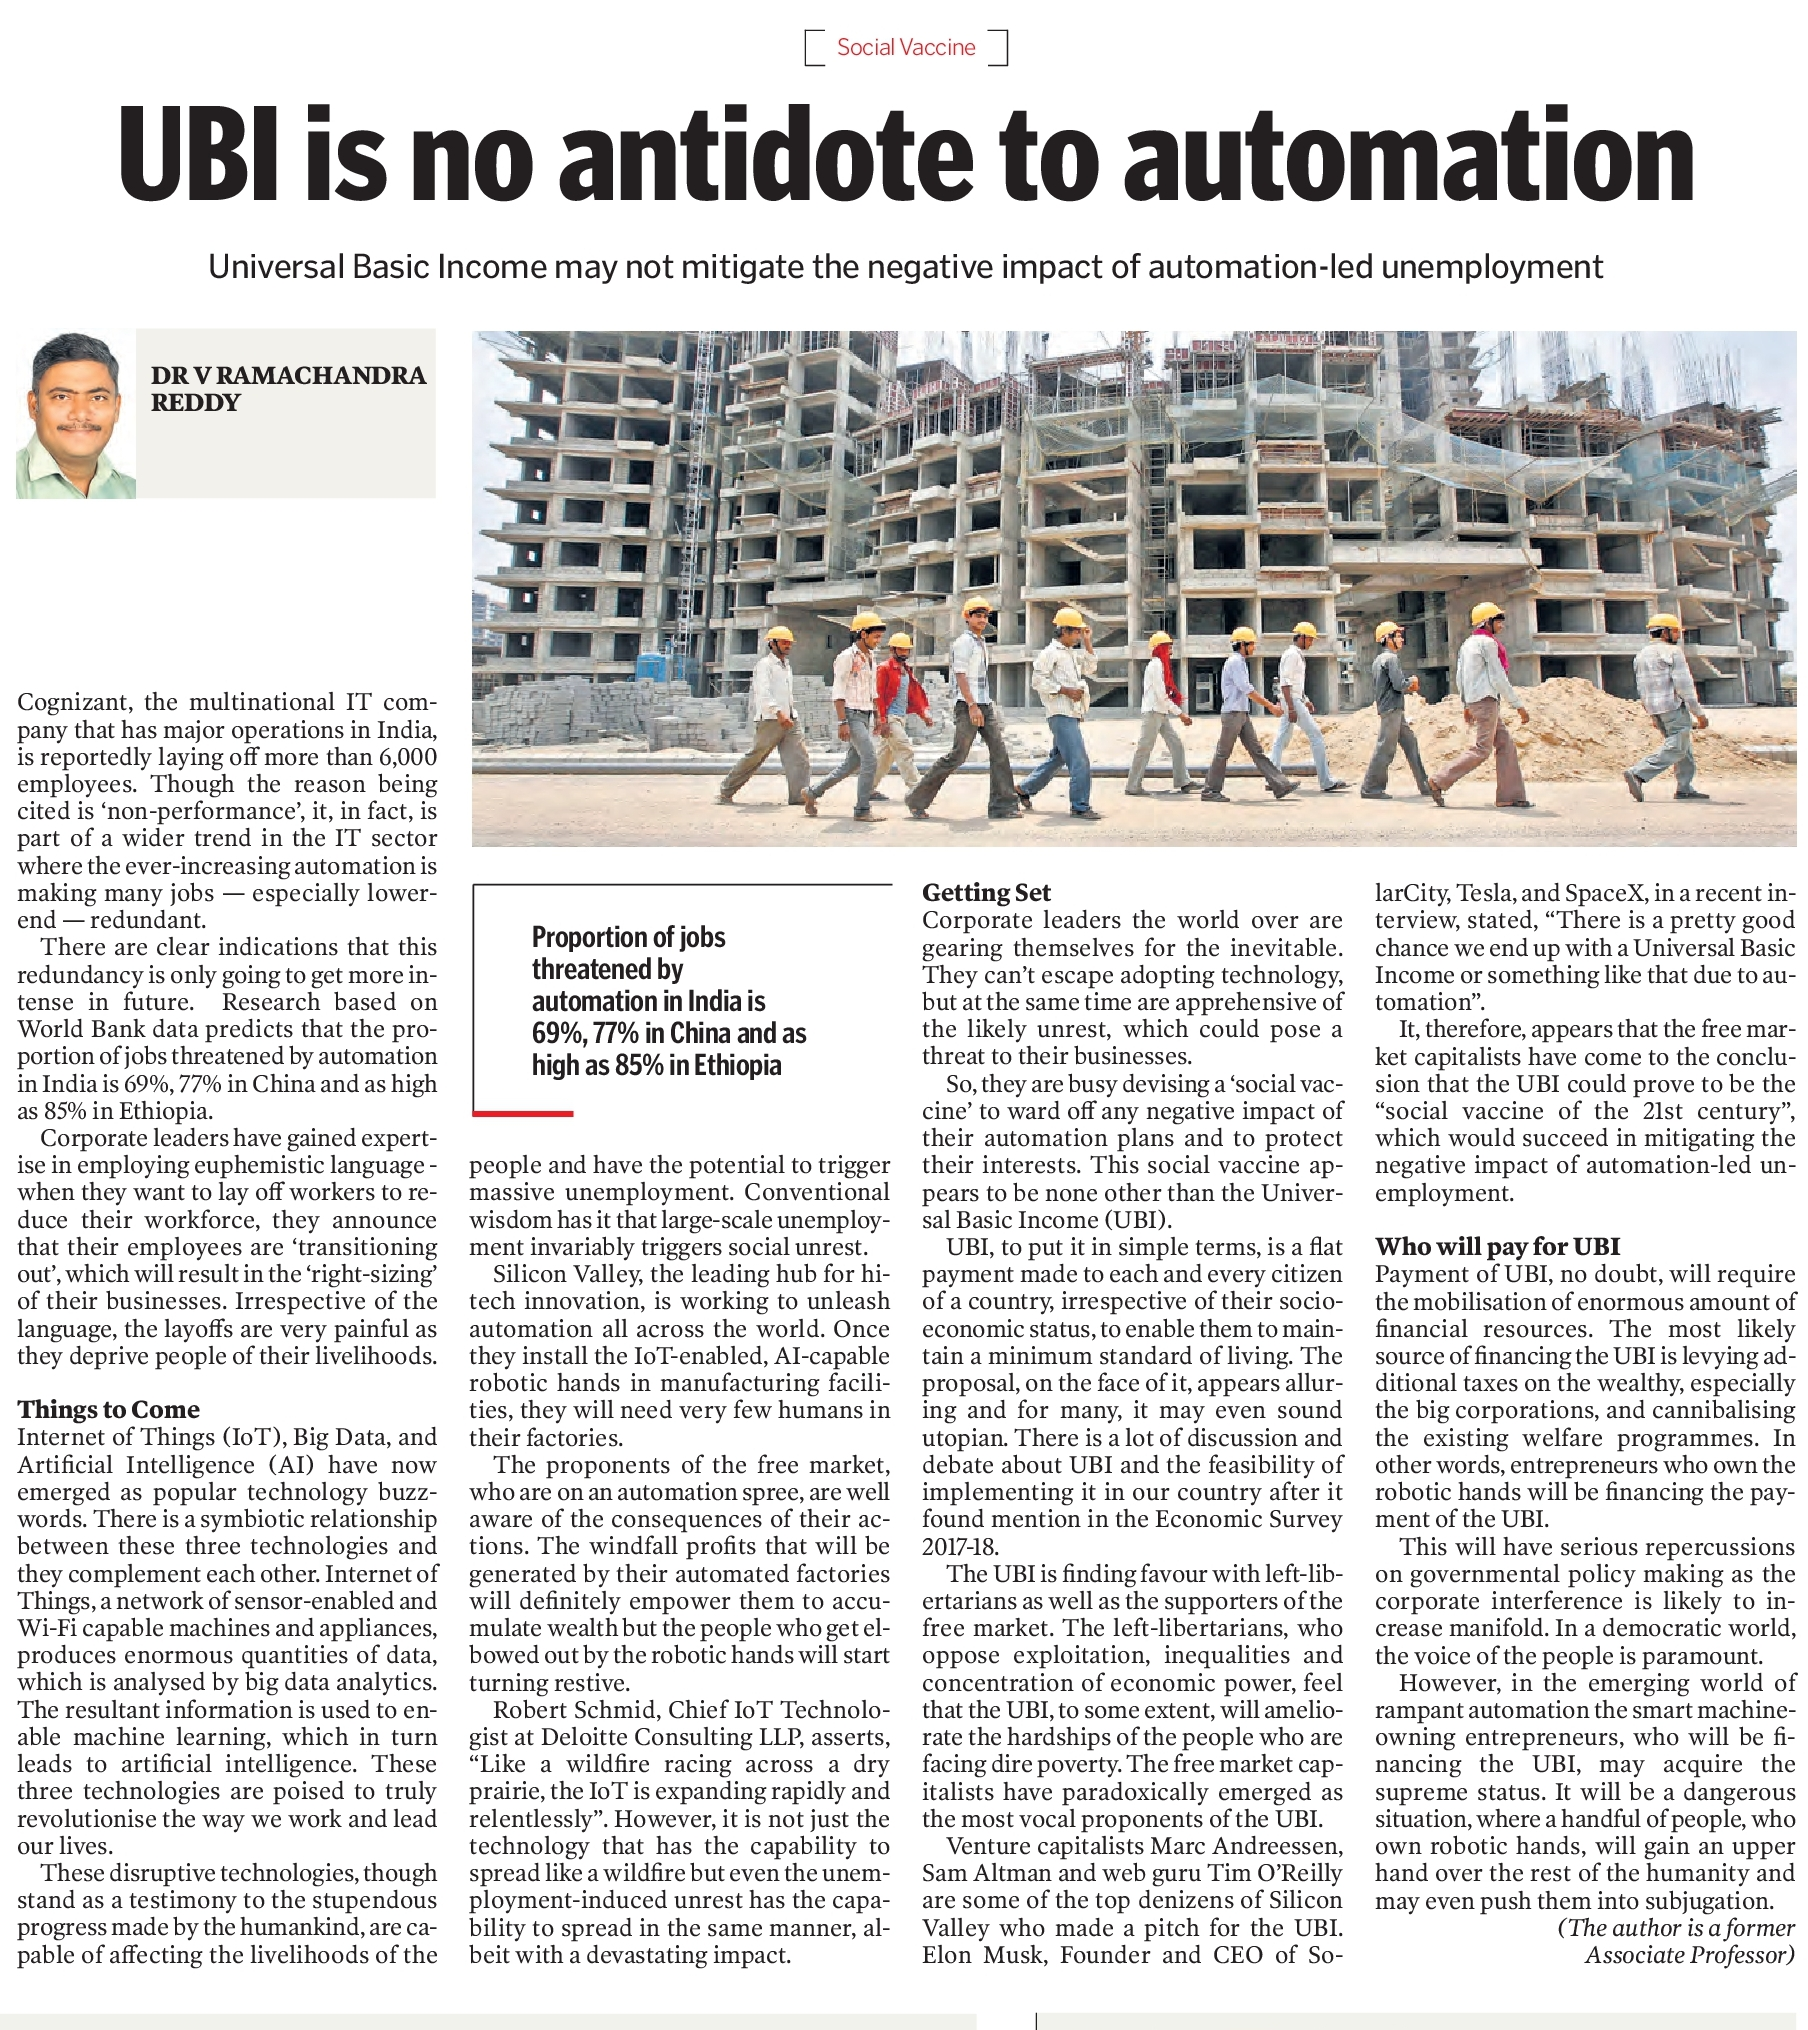 UBI is not an antidote to automation